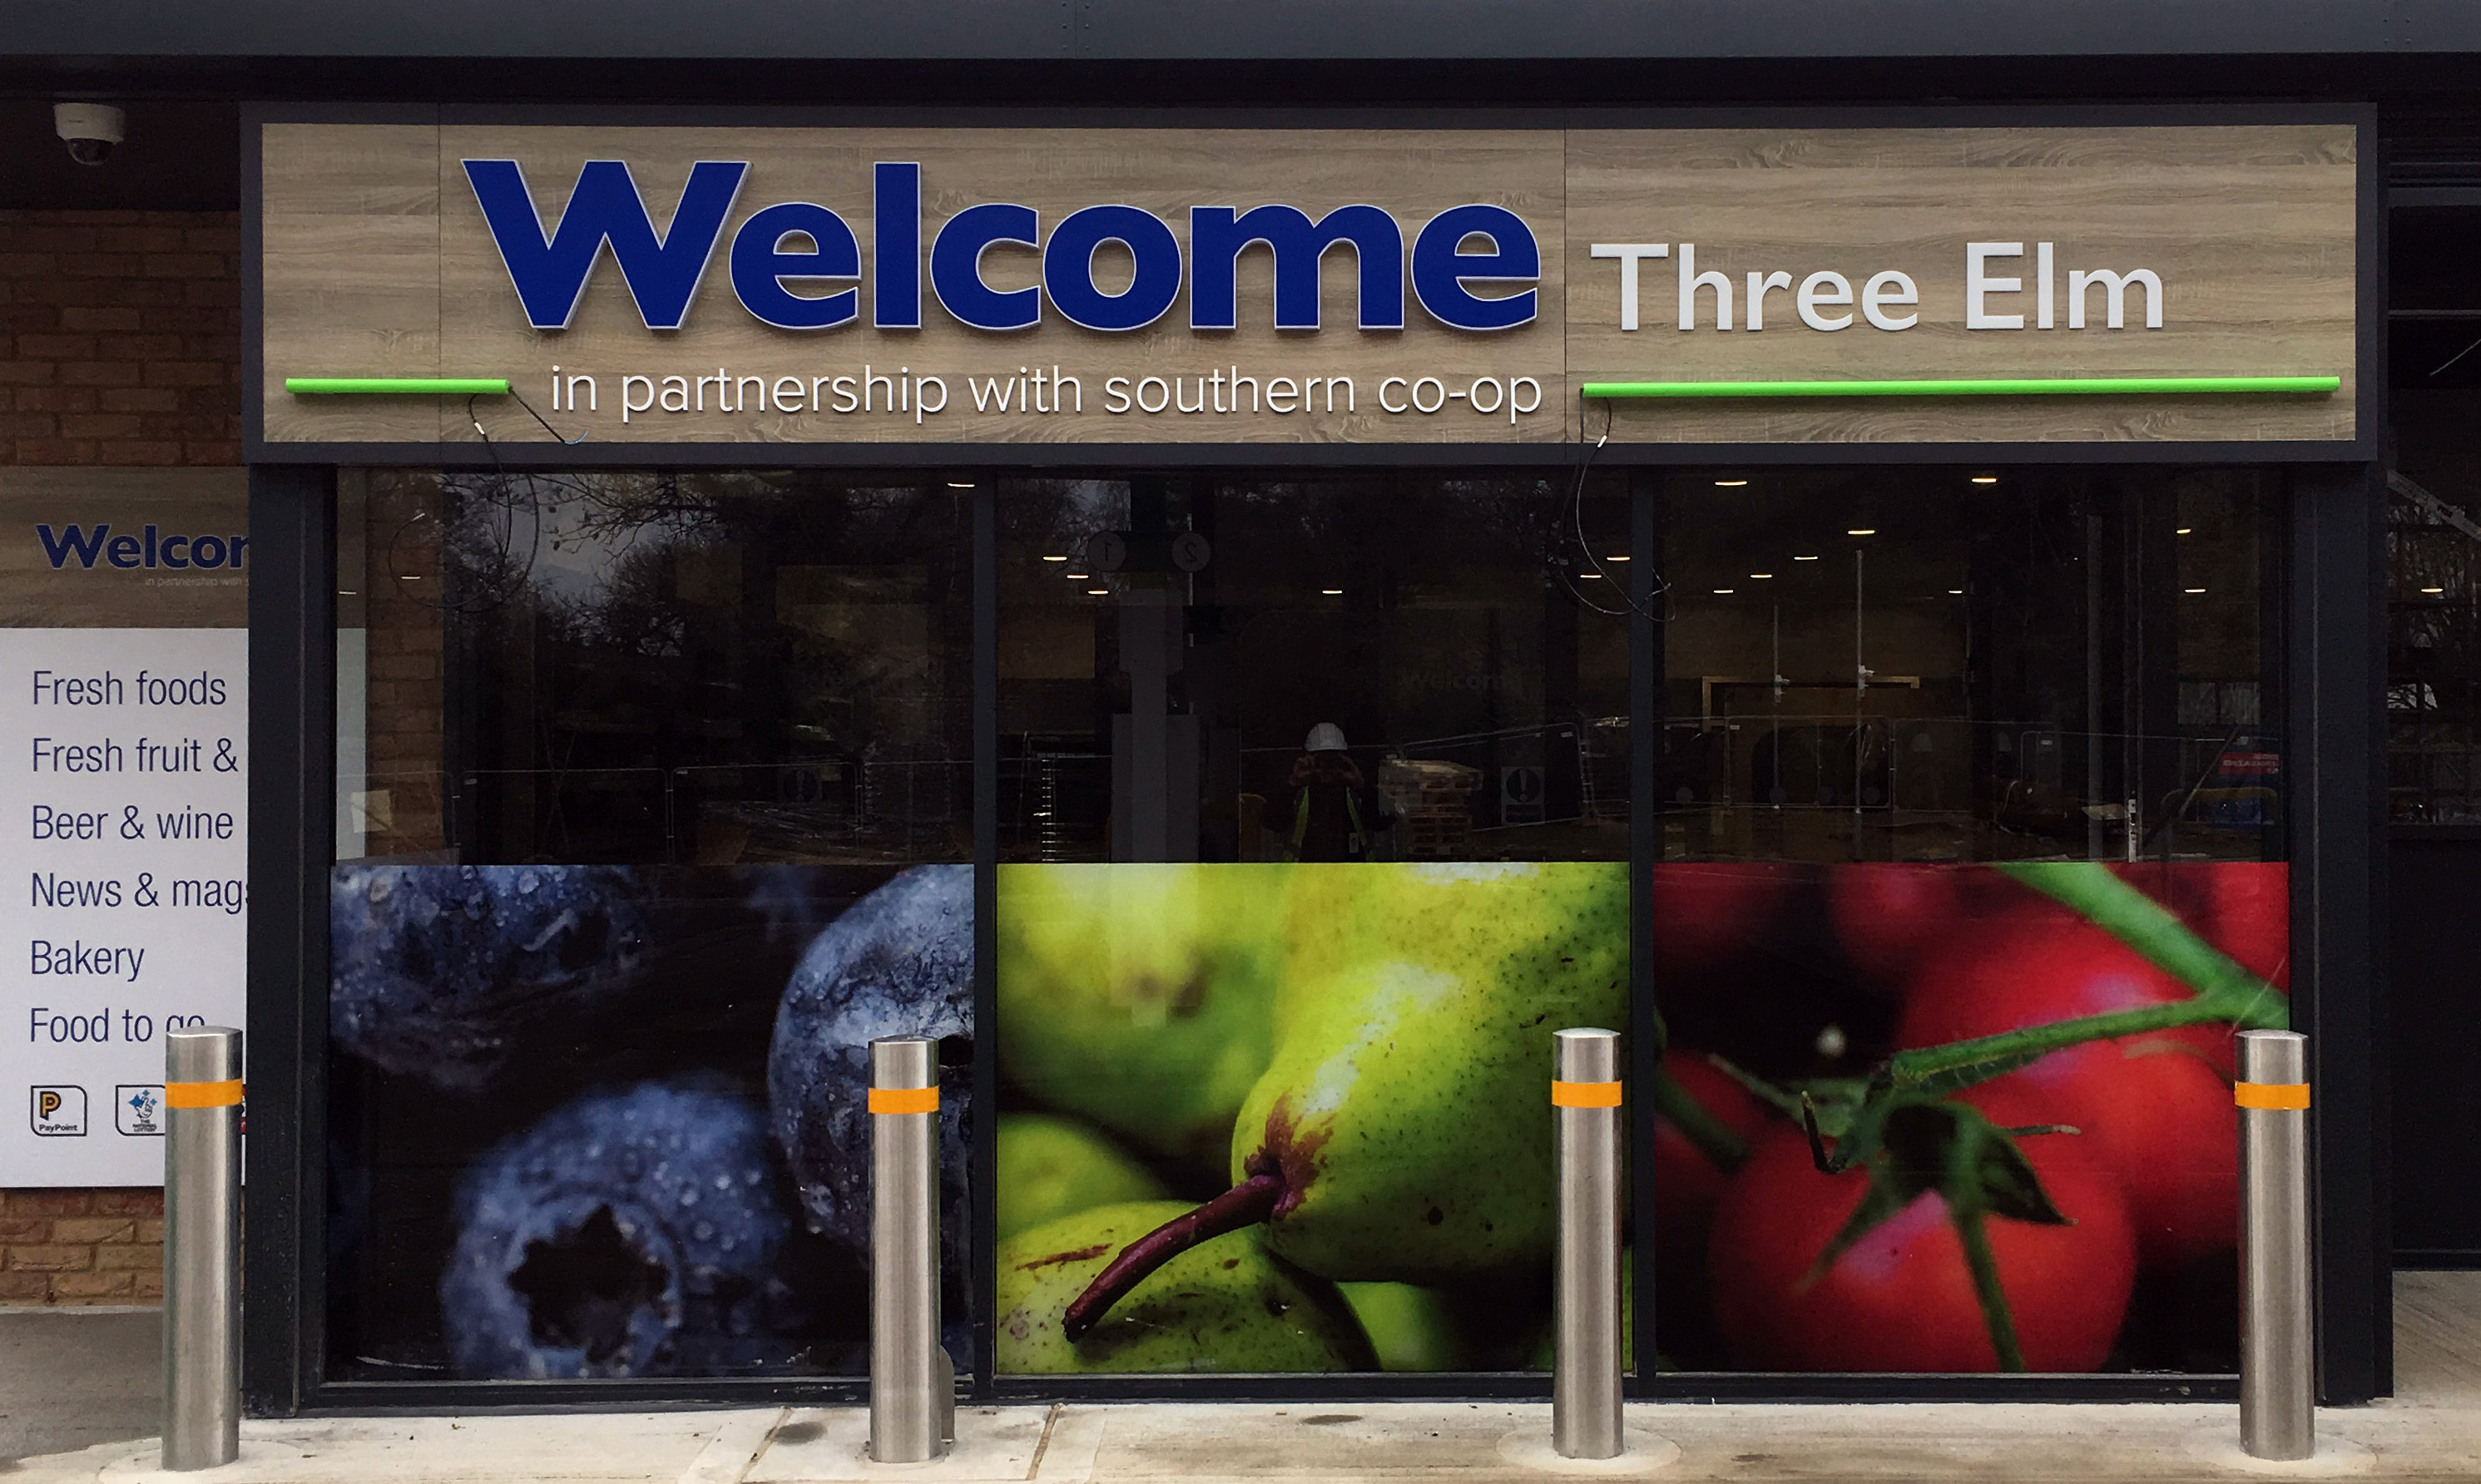 Southern Co-operative exterior signage